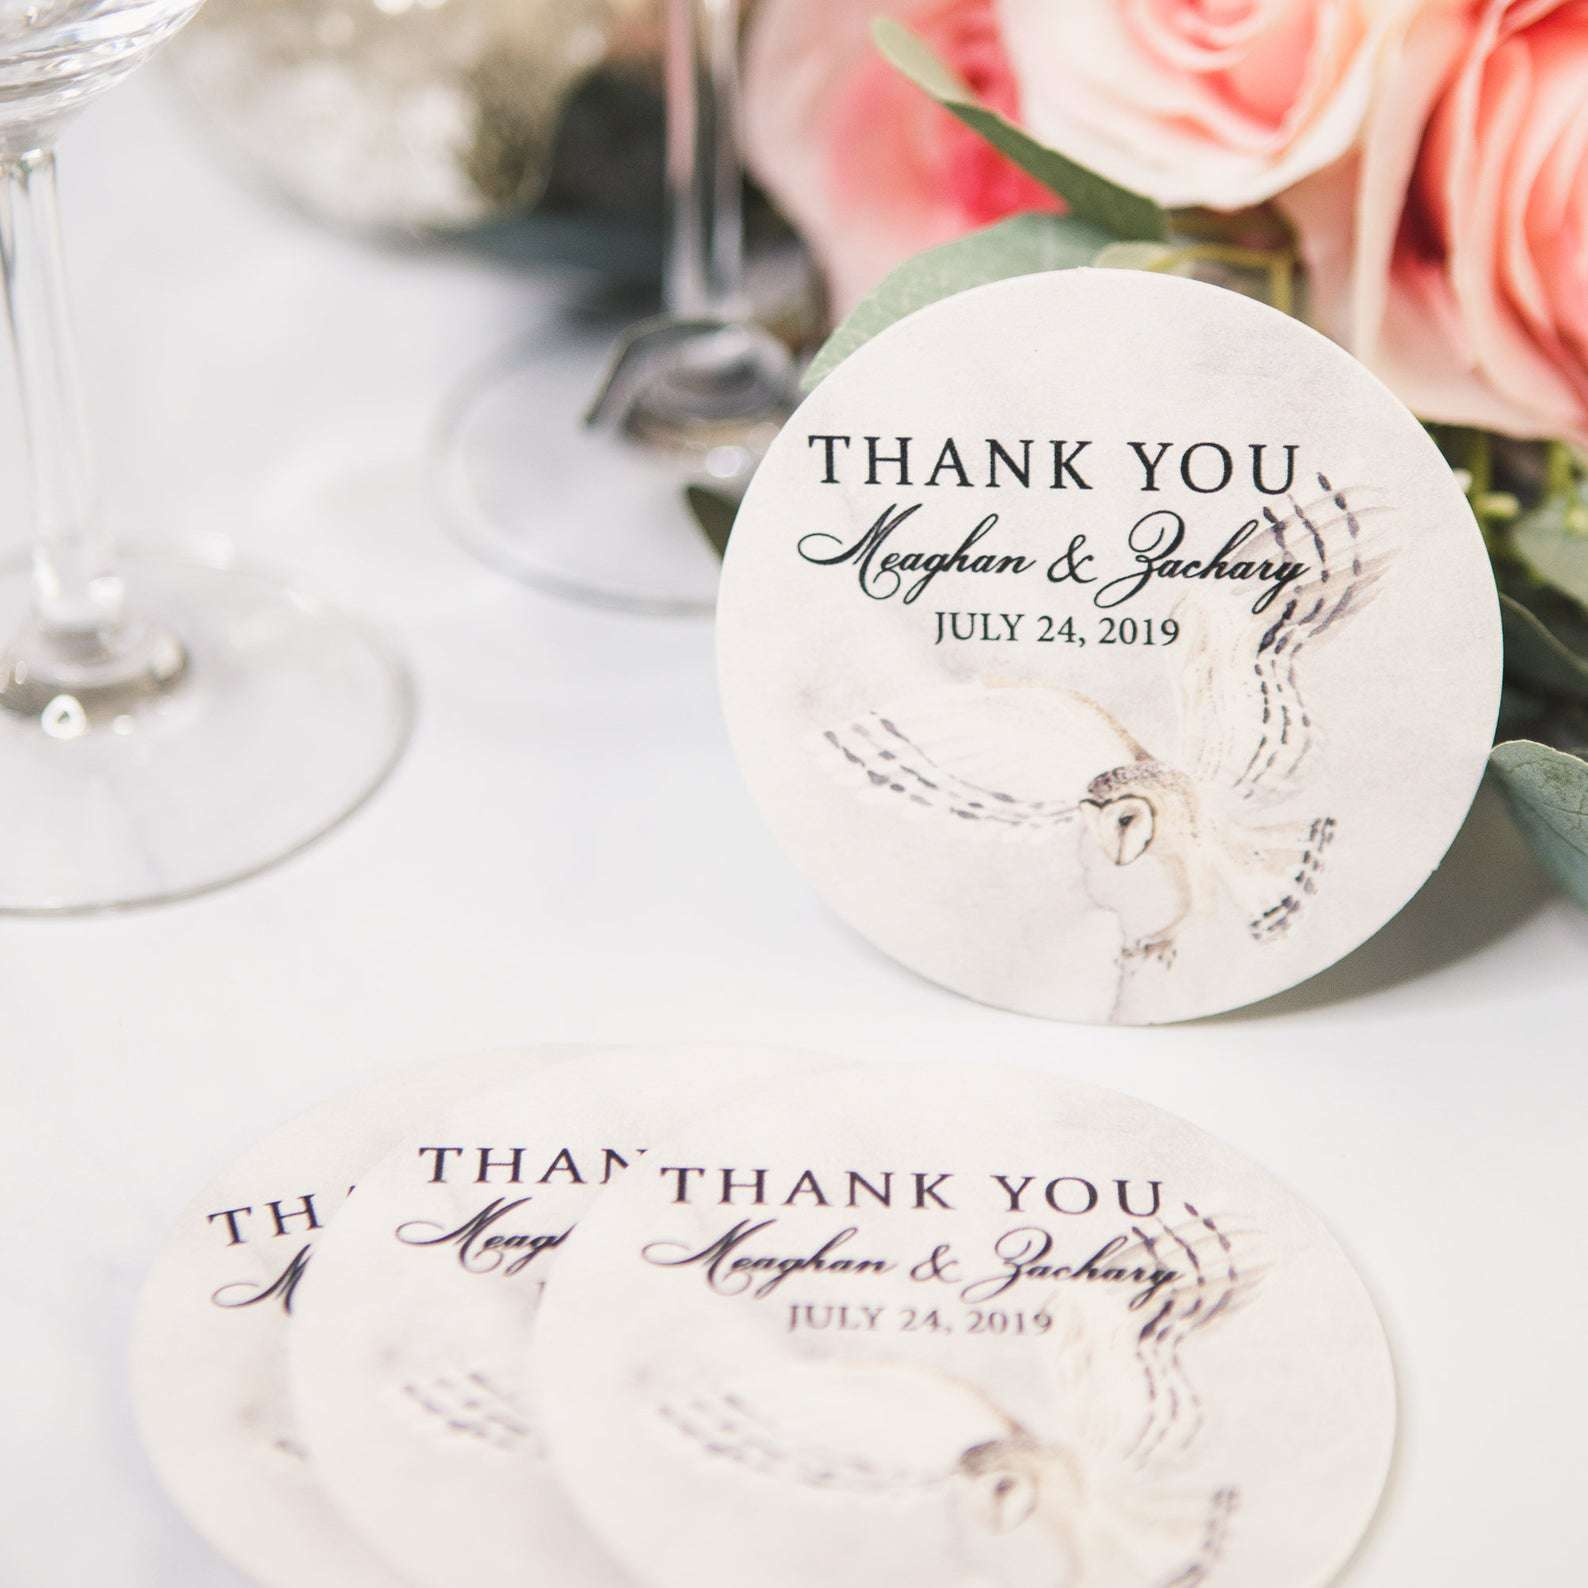 22 Magical Harry Potter Wedding Ideas To Include In Your Big Day